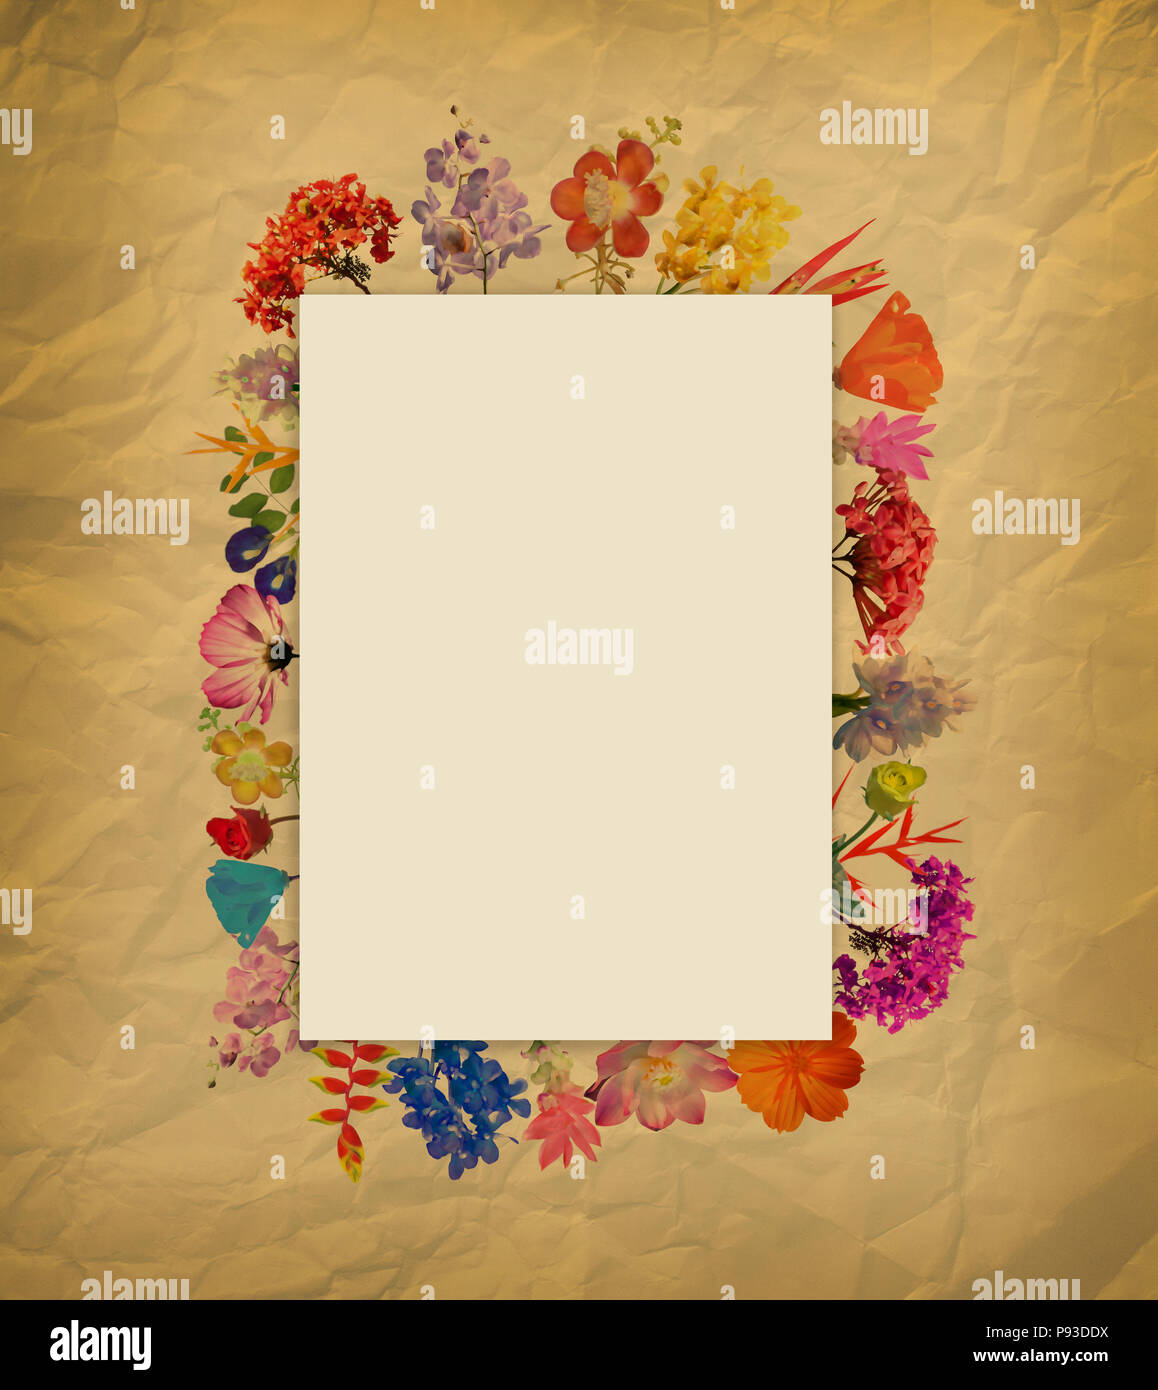 Arrangement Watercolor Flower Frame On Brown Paper Background Stock